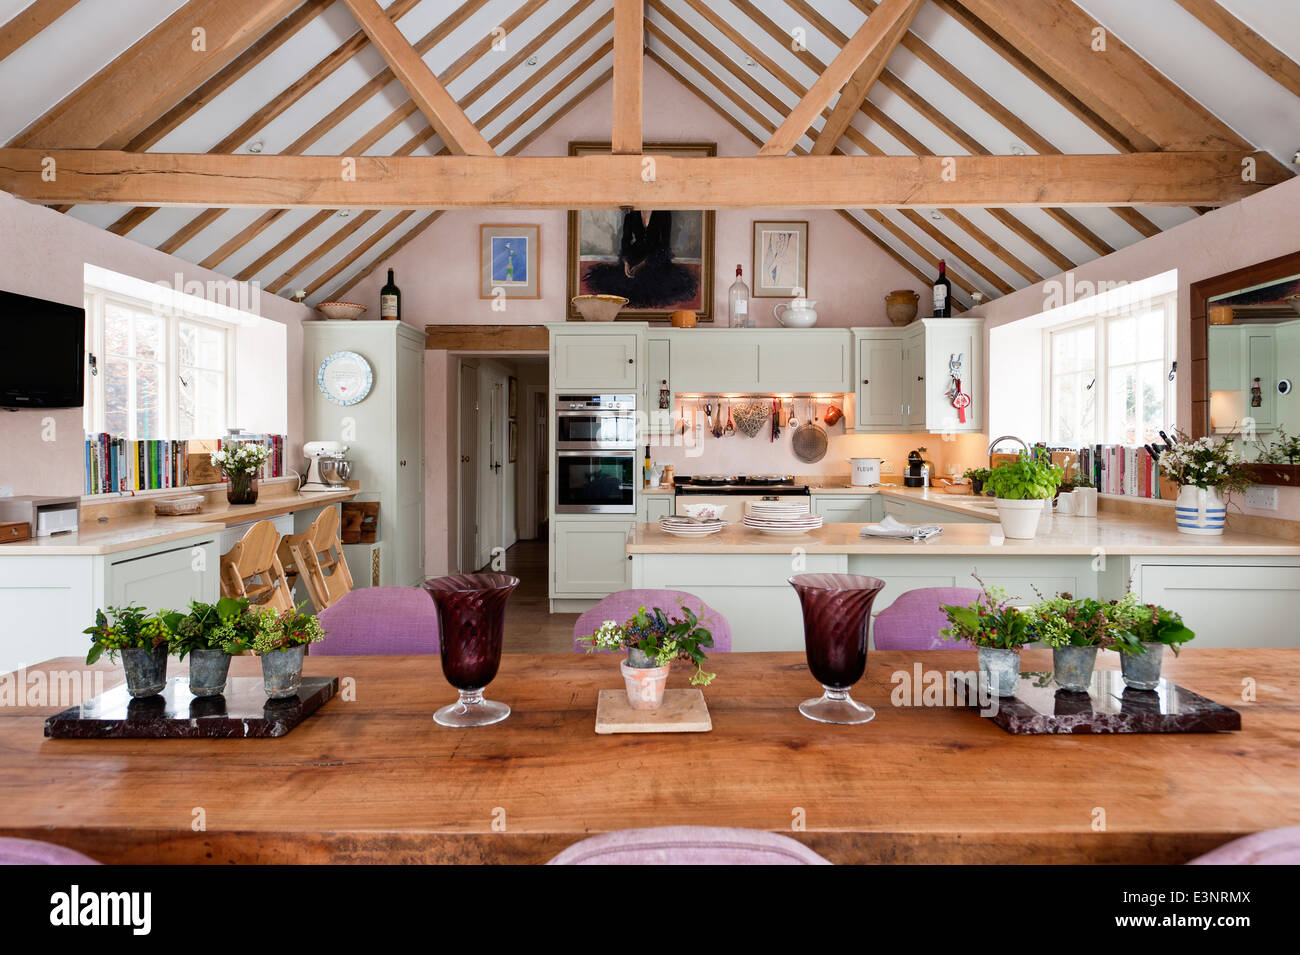 For Kitchen Diners Kitchen Diner Home Stock Photos Kitchen Diner Home Stock Images